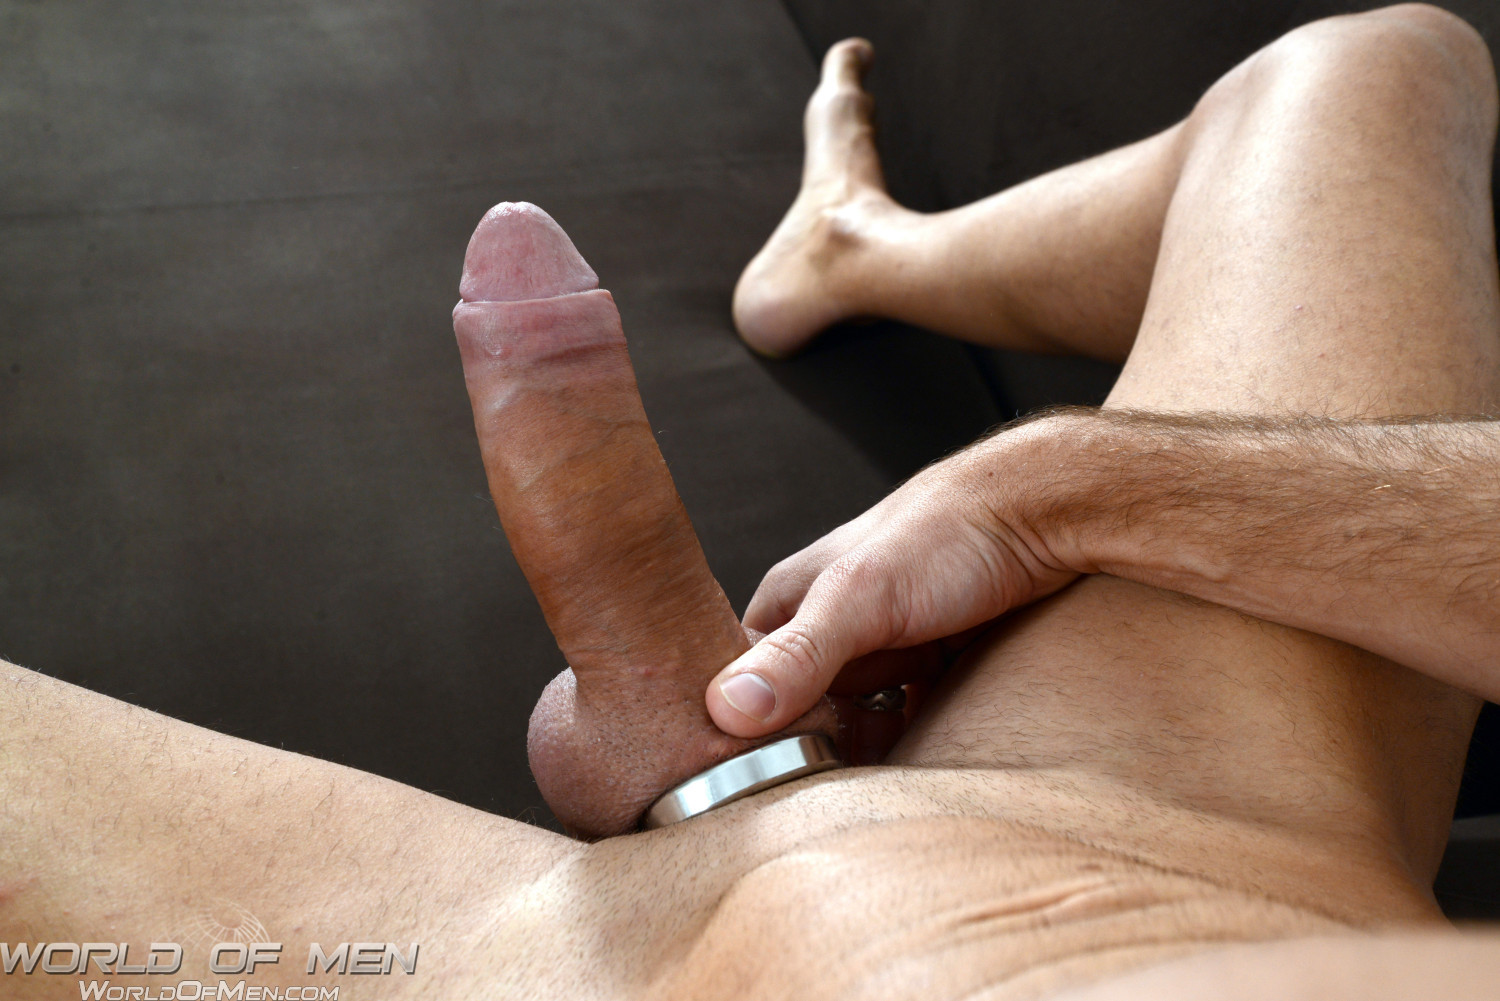 World-of-Men-Enzo-DiKarina-french-guy-with-a-huge-uncut-cock-massive-cum-load-07 Amateur French Hustler With Huge Uncut Cock Blasts Cum All Over